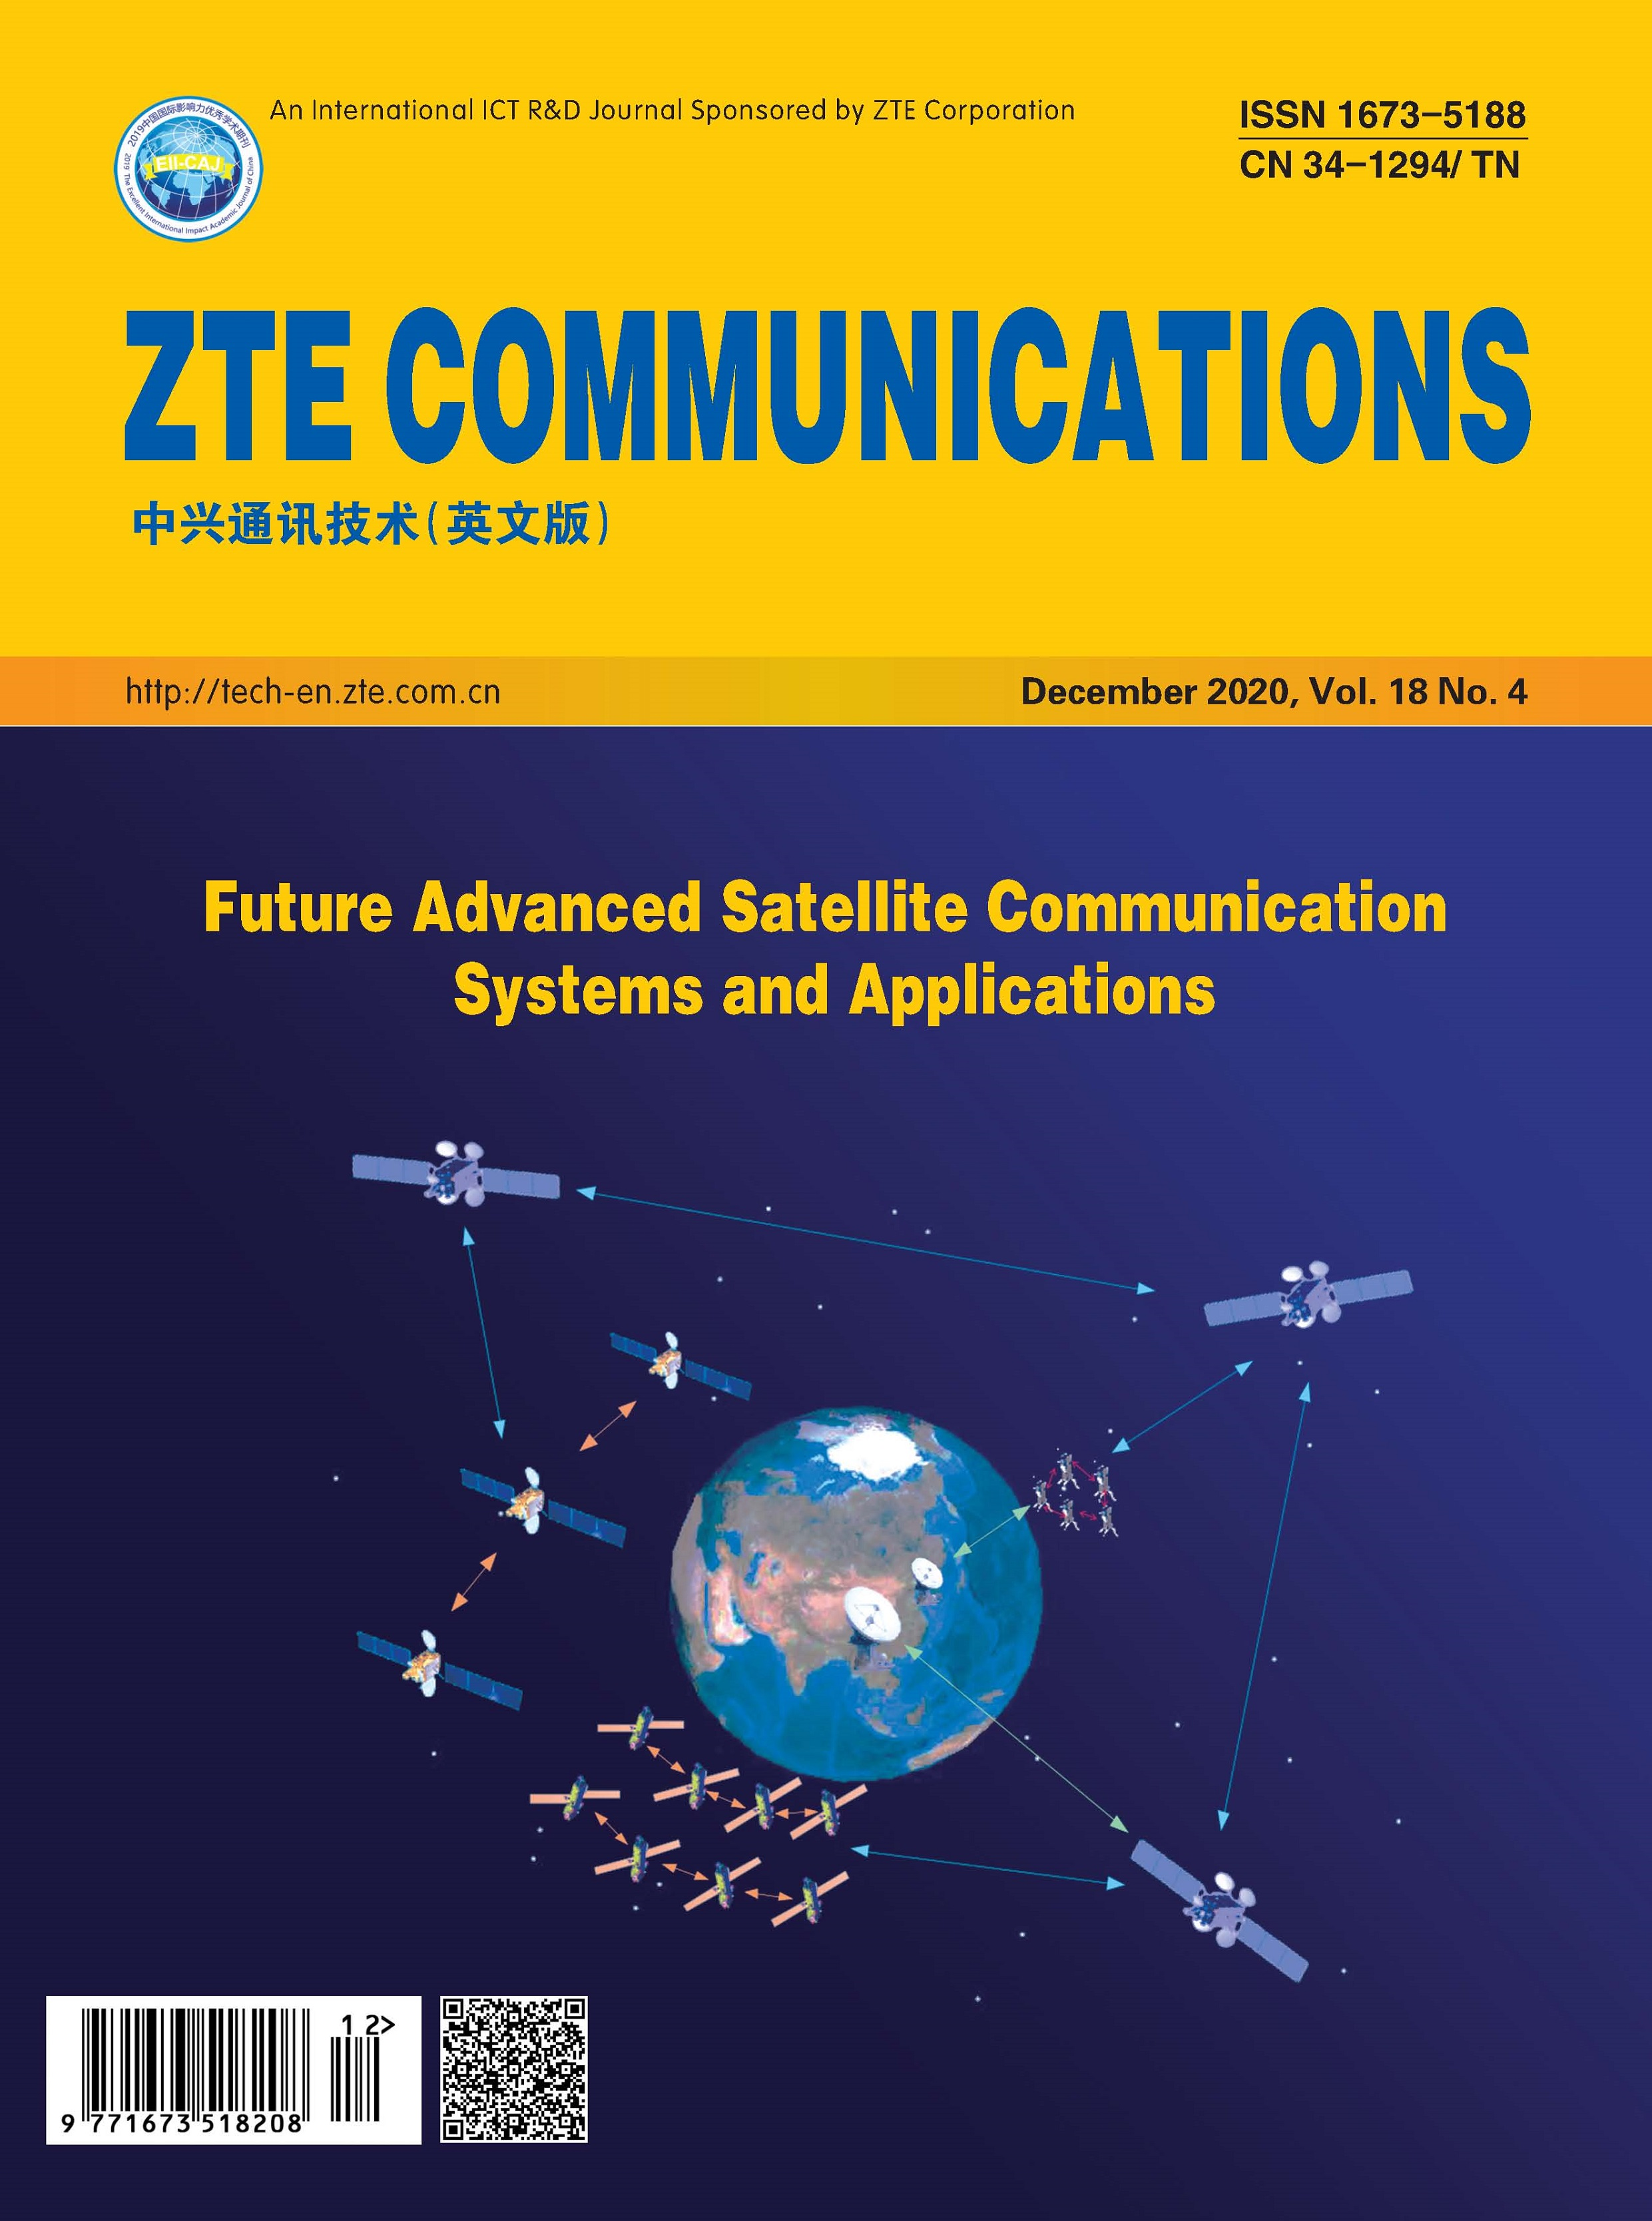 Special Topic on Future Advanced Satellite Communication Systems and Applications No.4 , No.72 in all volumes